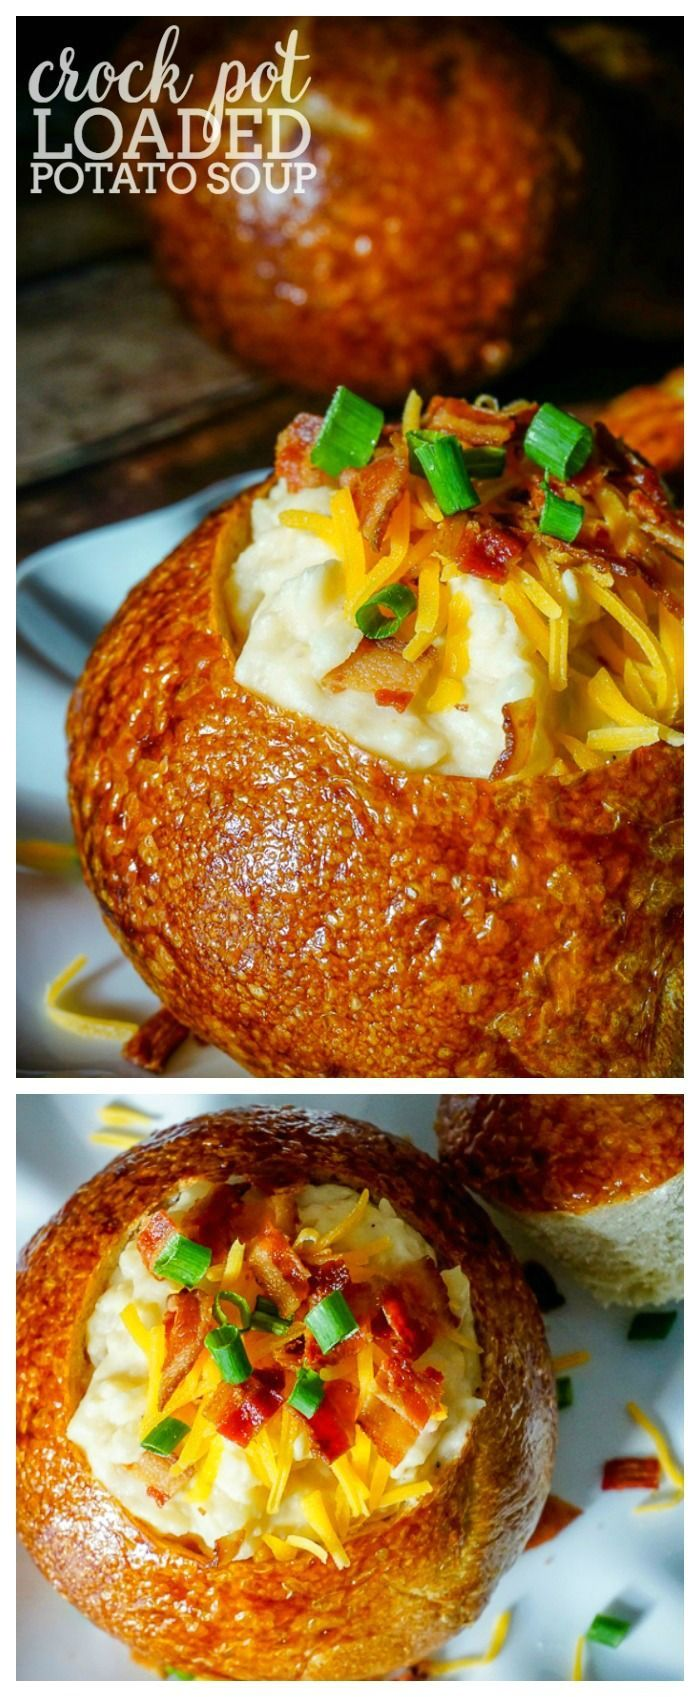 CROCK POT LOADED POTATO SOUP RECIPE - Make dinner time easier with a hearty, cheesy slow cooker version of this classic soup!